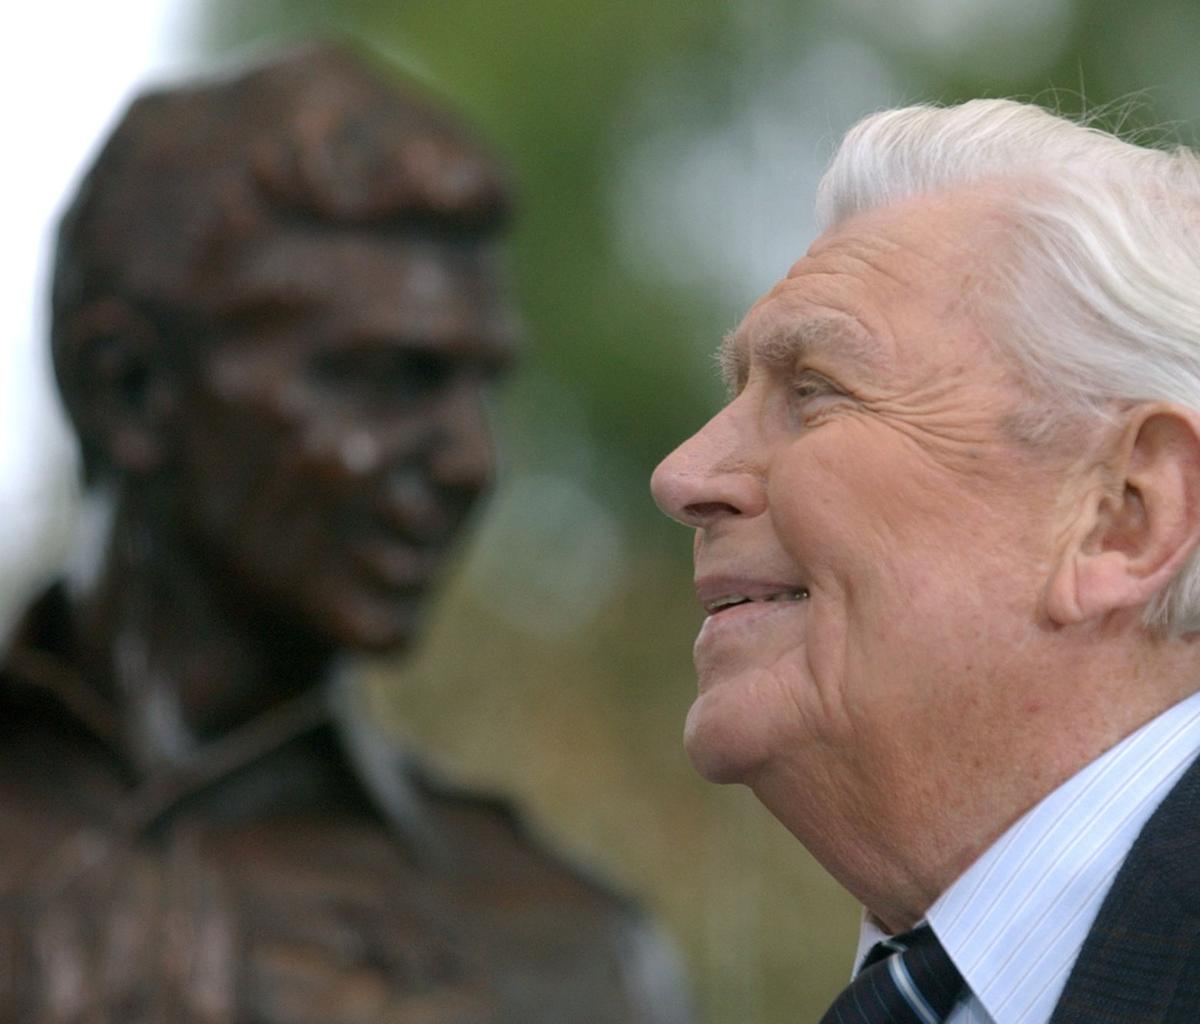 Andy Griffith acted, and lived, by the Golden RuleAndy Griffith was good for, and good at, business